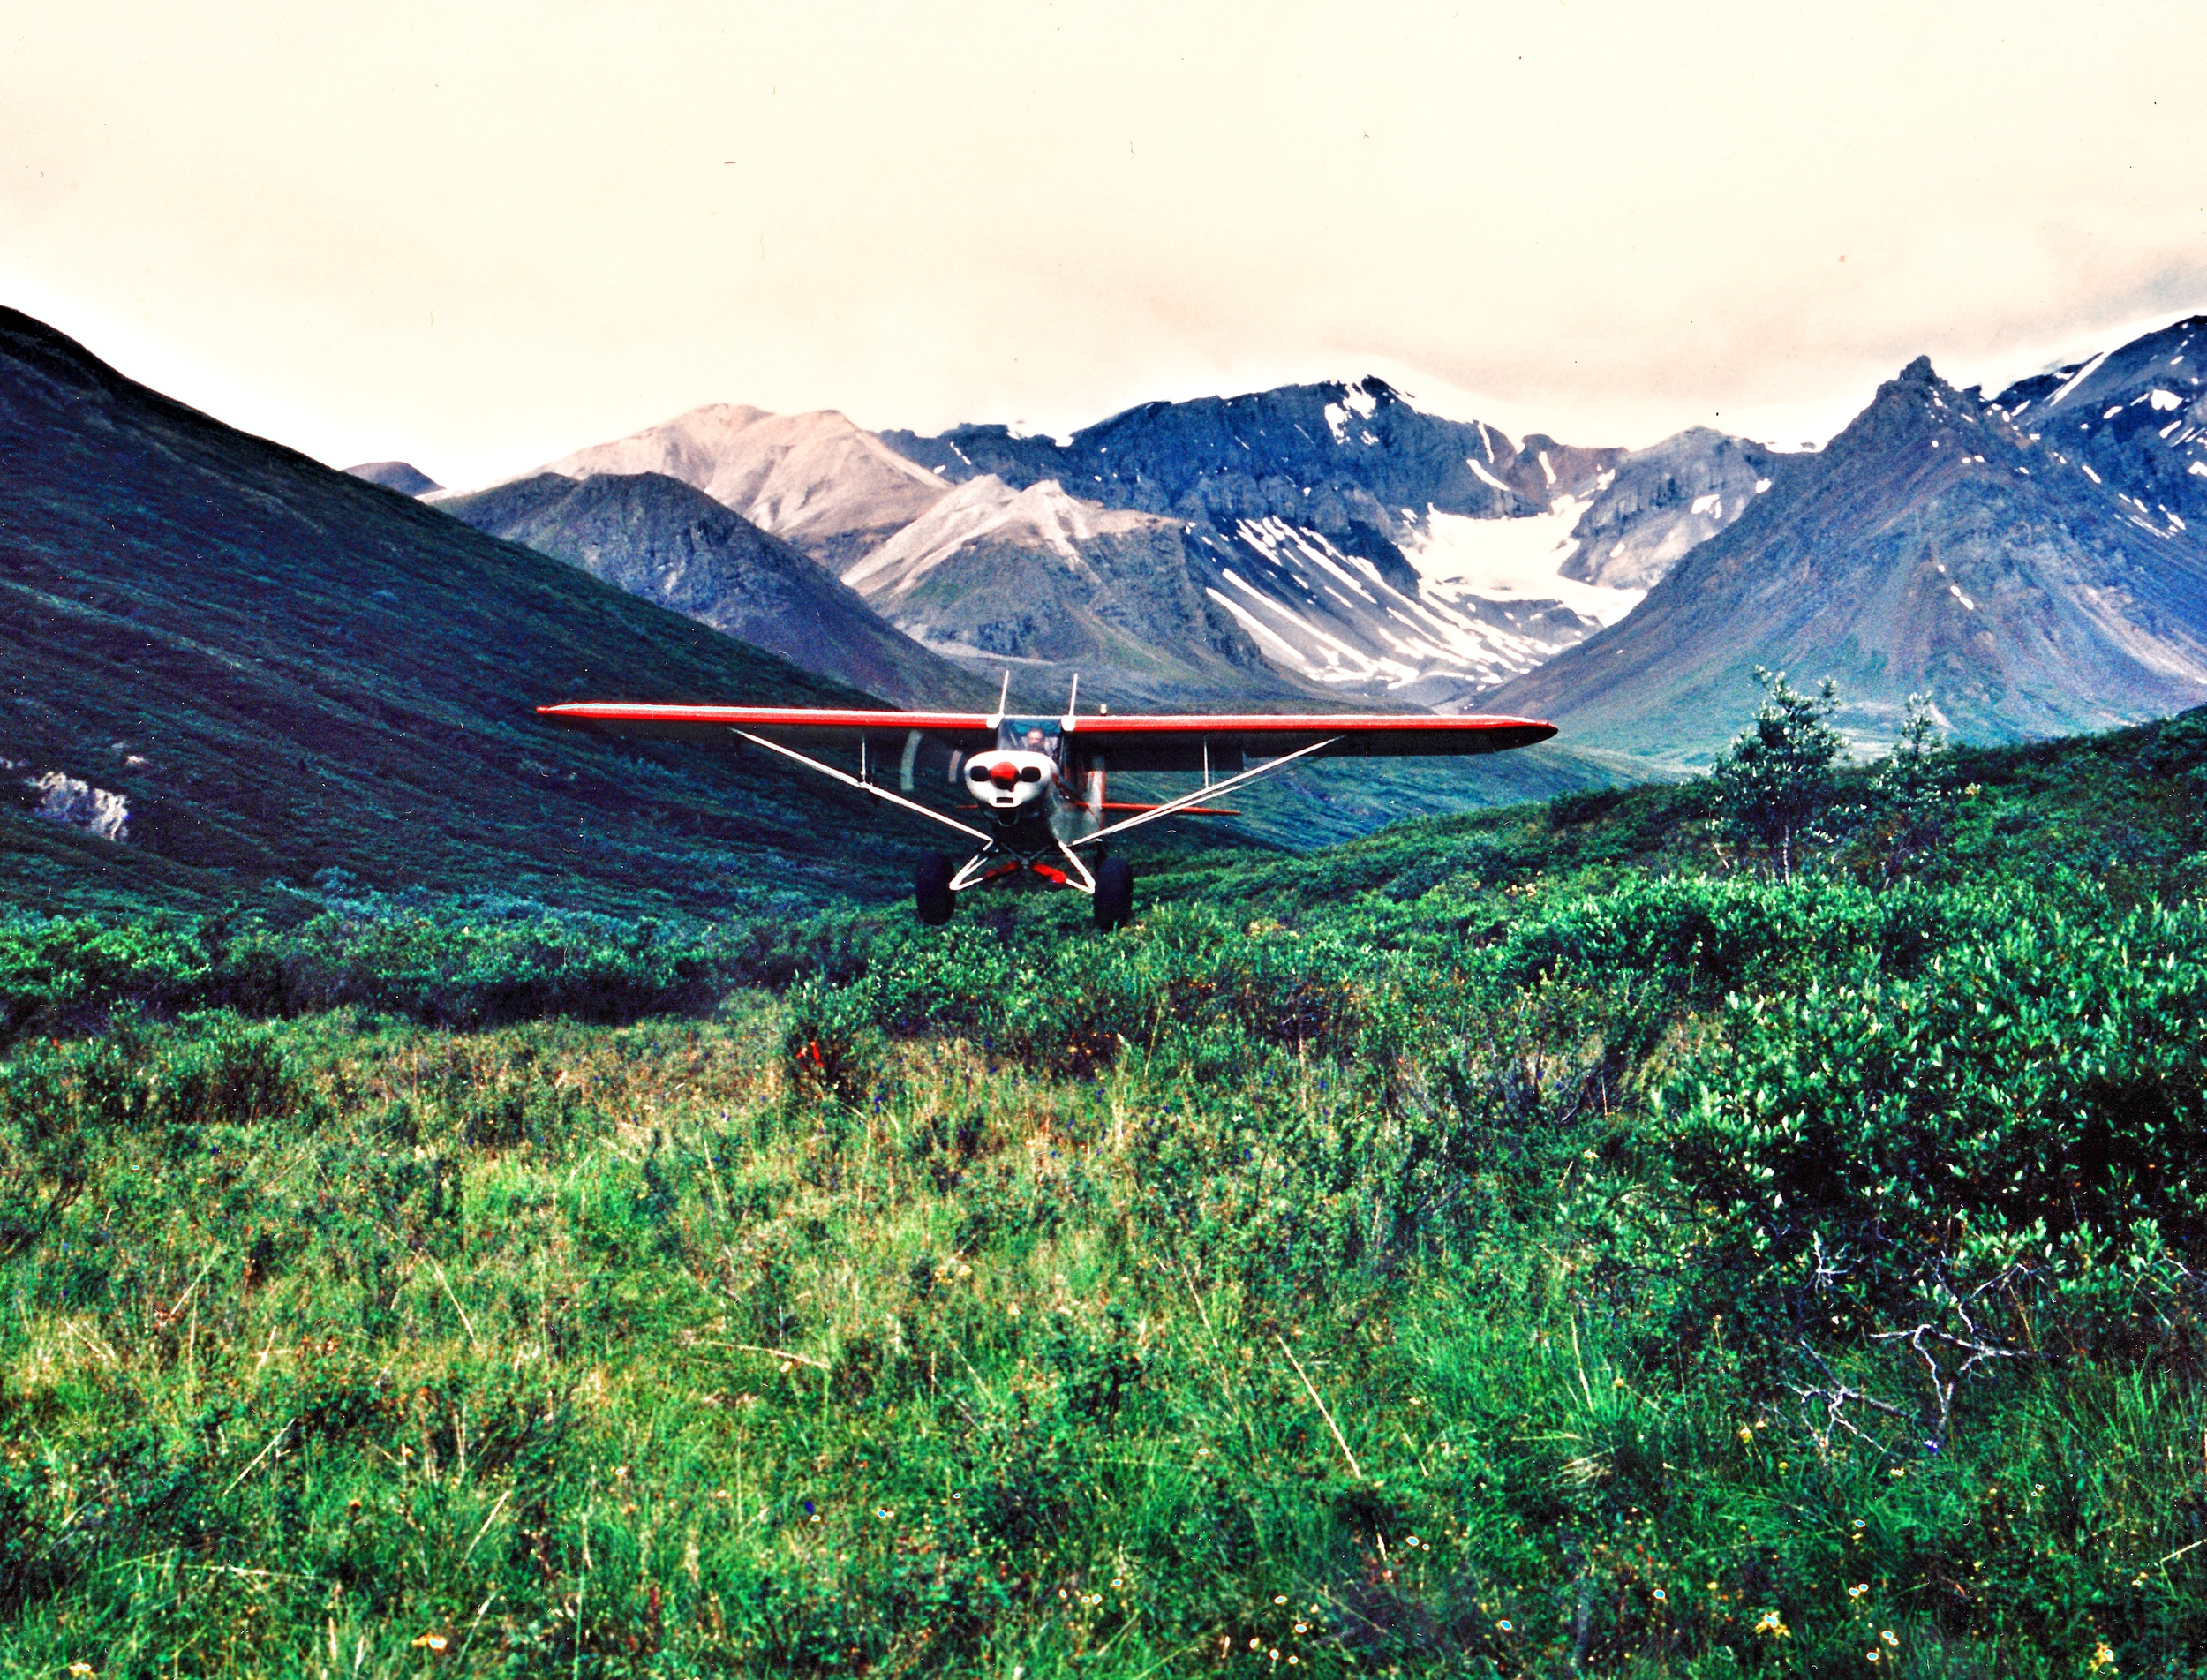 Landing at swamp camp, altitude 4000'. This picture was taken by Demitrious Deoudes or better known as Dee. Dee was one of our top sheep guides. He still works for AAA Alaskan Outfitters now as a pilot.